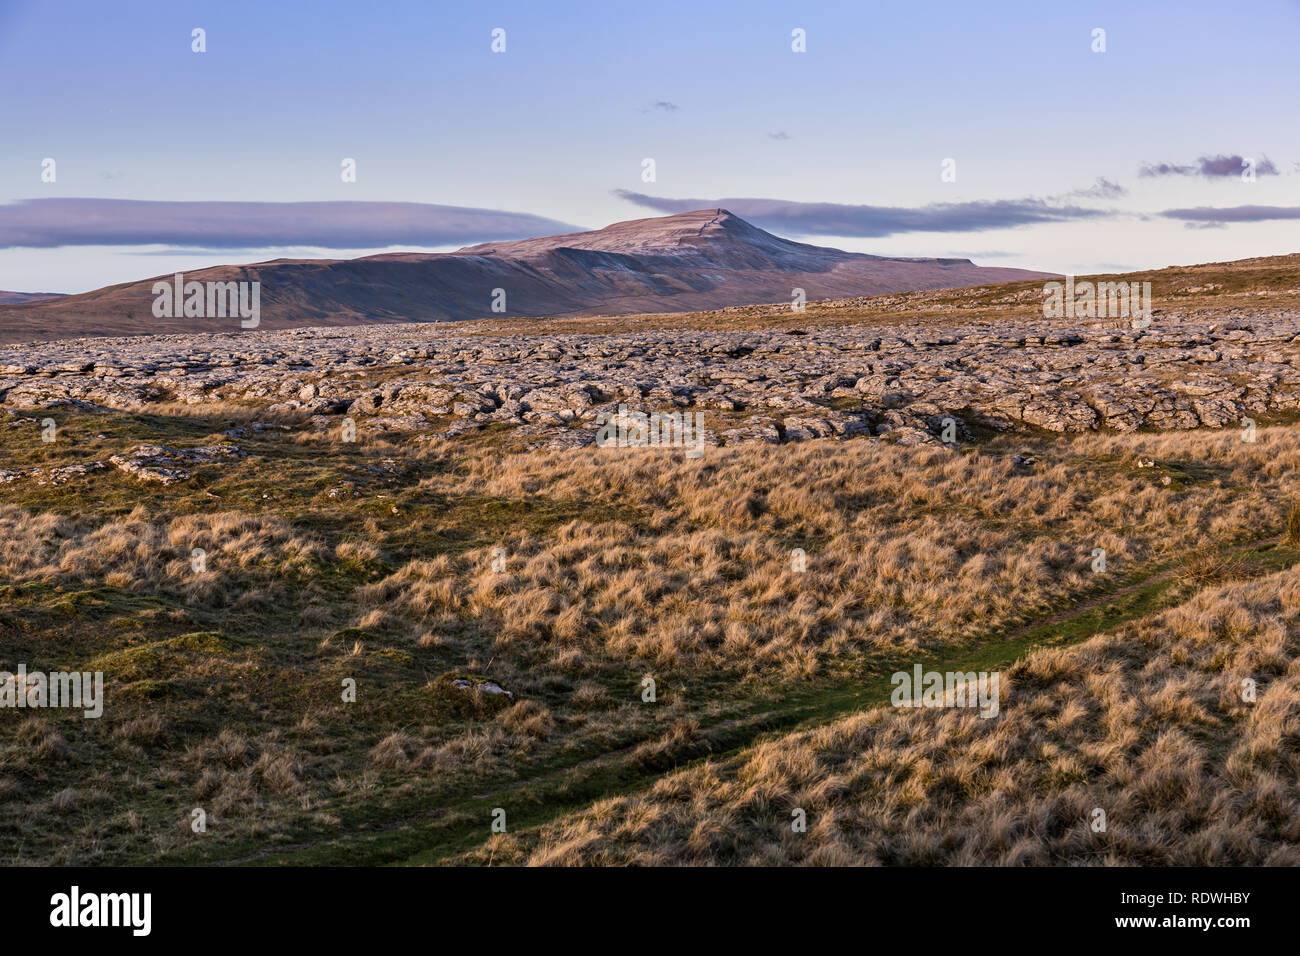 Whernside At 736m (2,415ft), the highest of the Yorkshire Three Peaks is the least popular among walkers perhaps because of its less iconic profile. - Stock Image